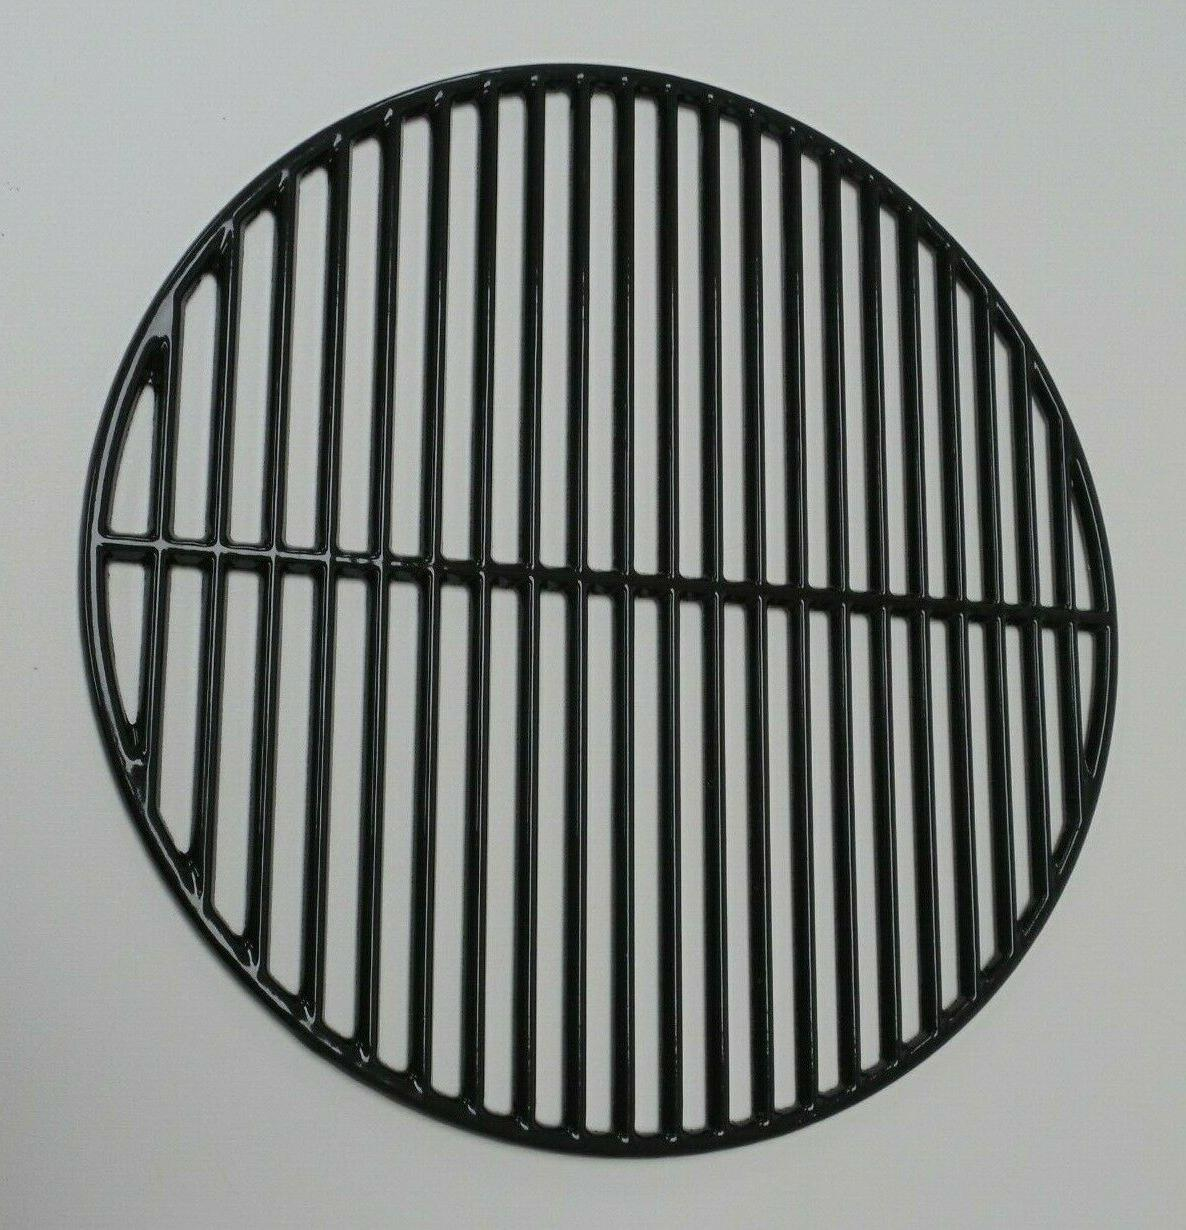 18 cast iron cooking grate for large